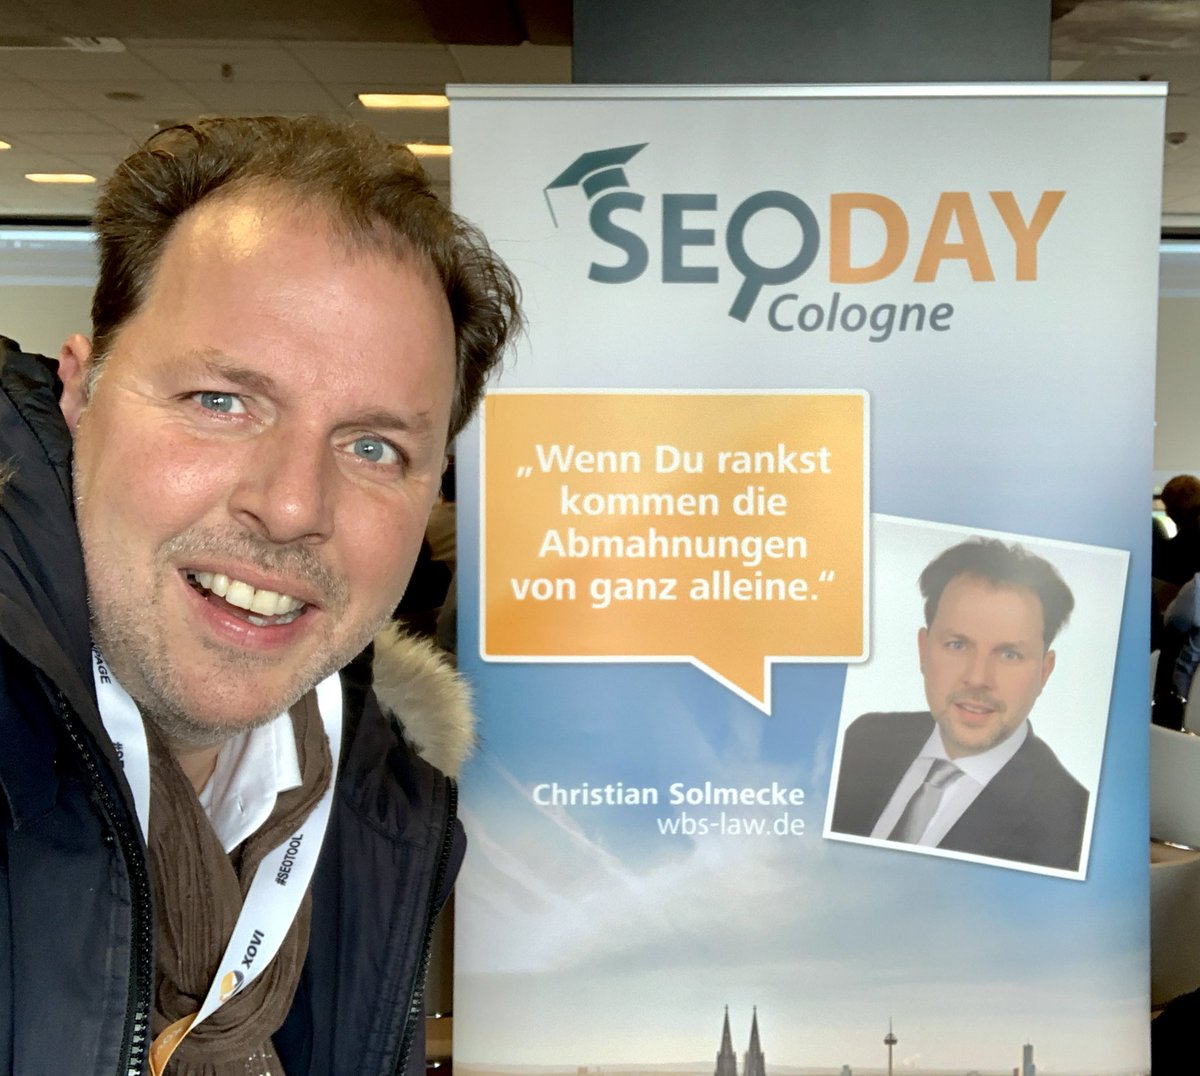 #Seoday Latest News Trends Updates Images - solmecke